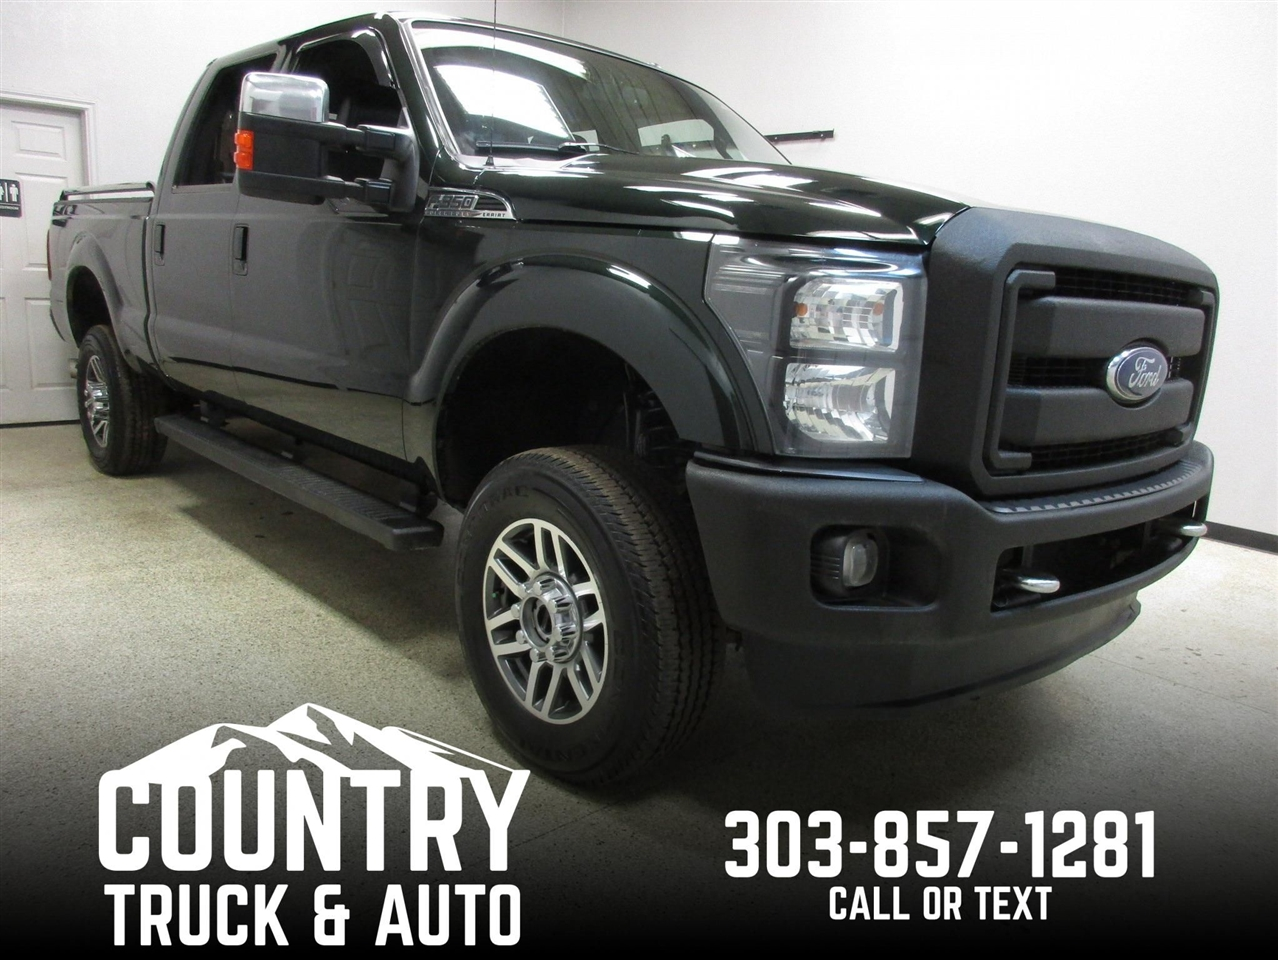 2012 Ford Super Duty F-350 SRW Lariat Crew Cab Short Bed 4WD